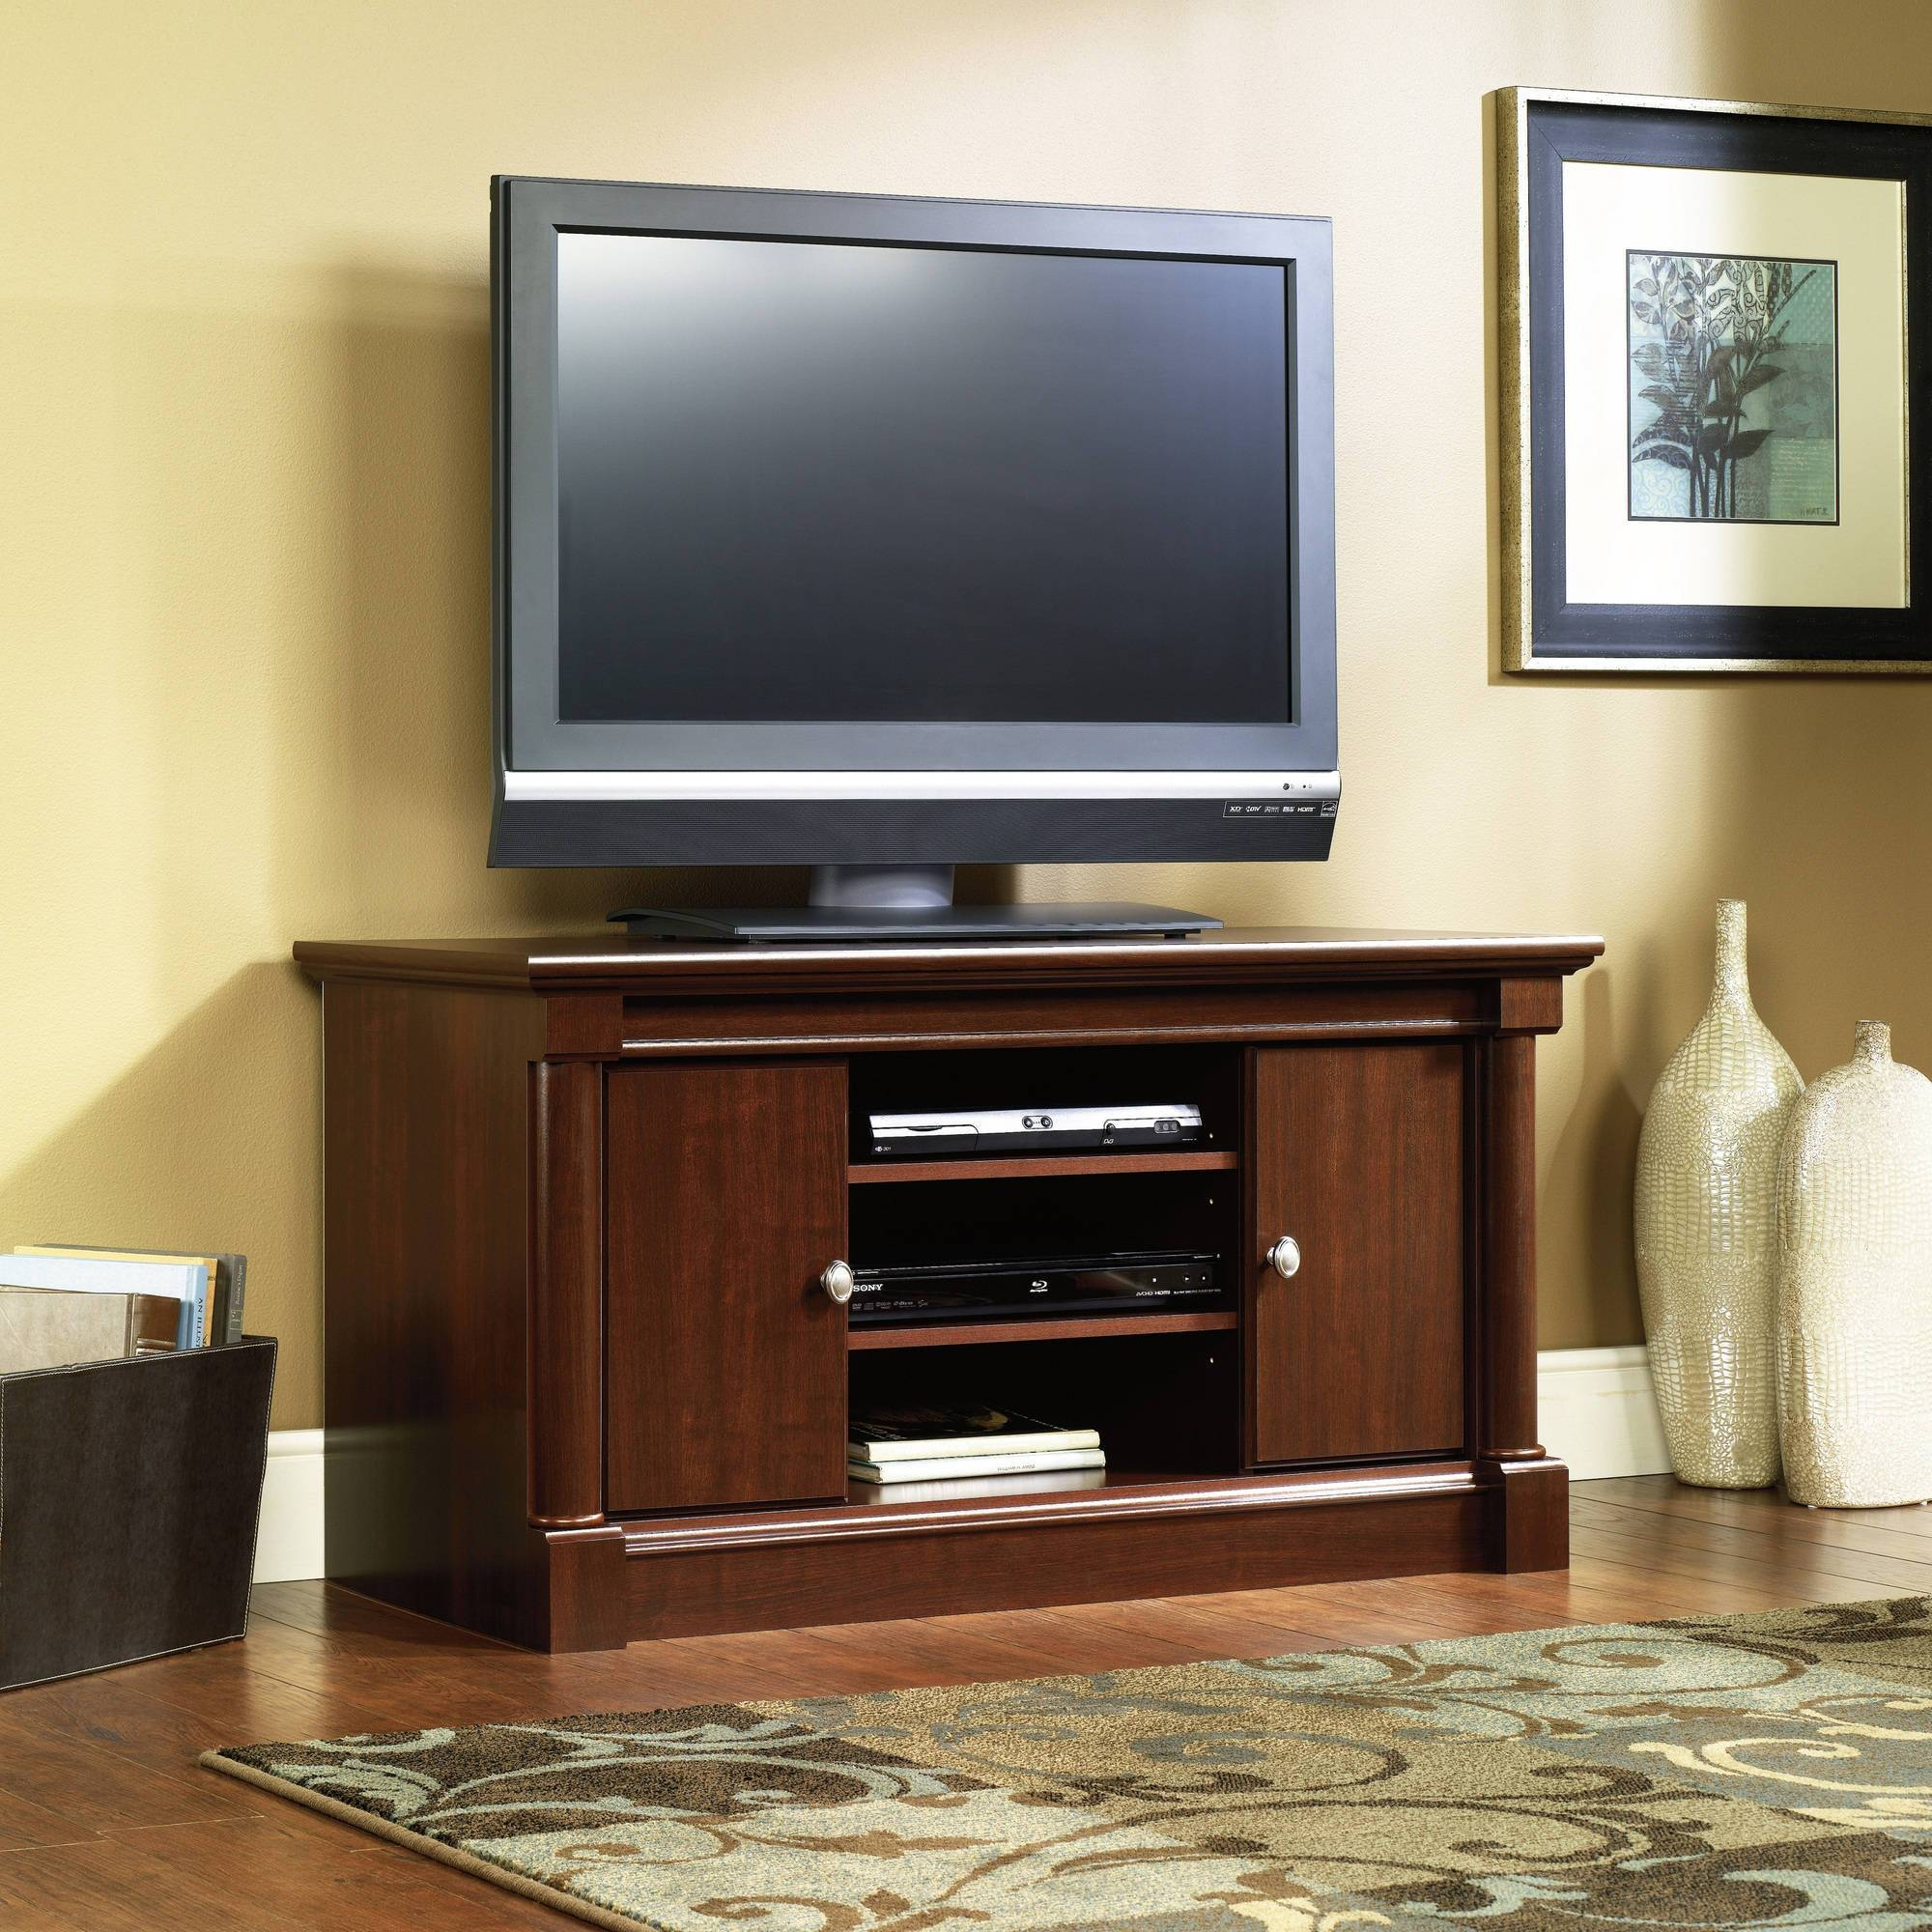 Furniture: Banquette Bench With Minka Lavery Also Sauder Tv Stands For Bench Tv Stands (View 15 of 15)